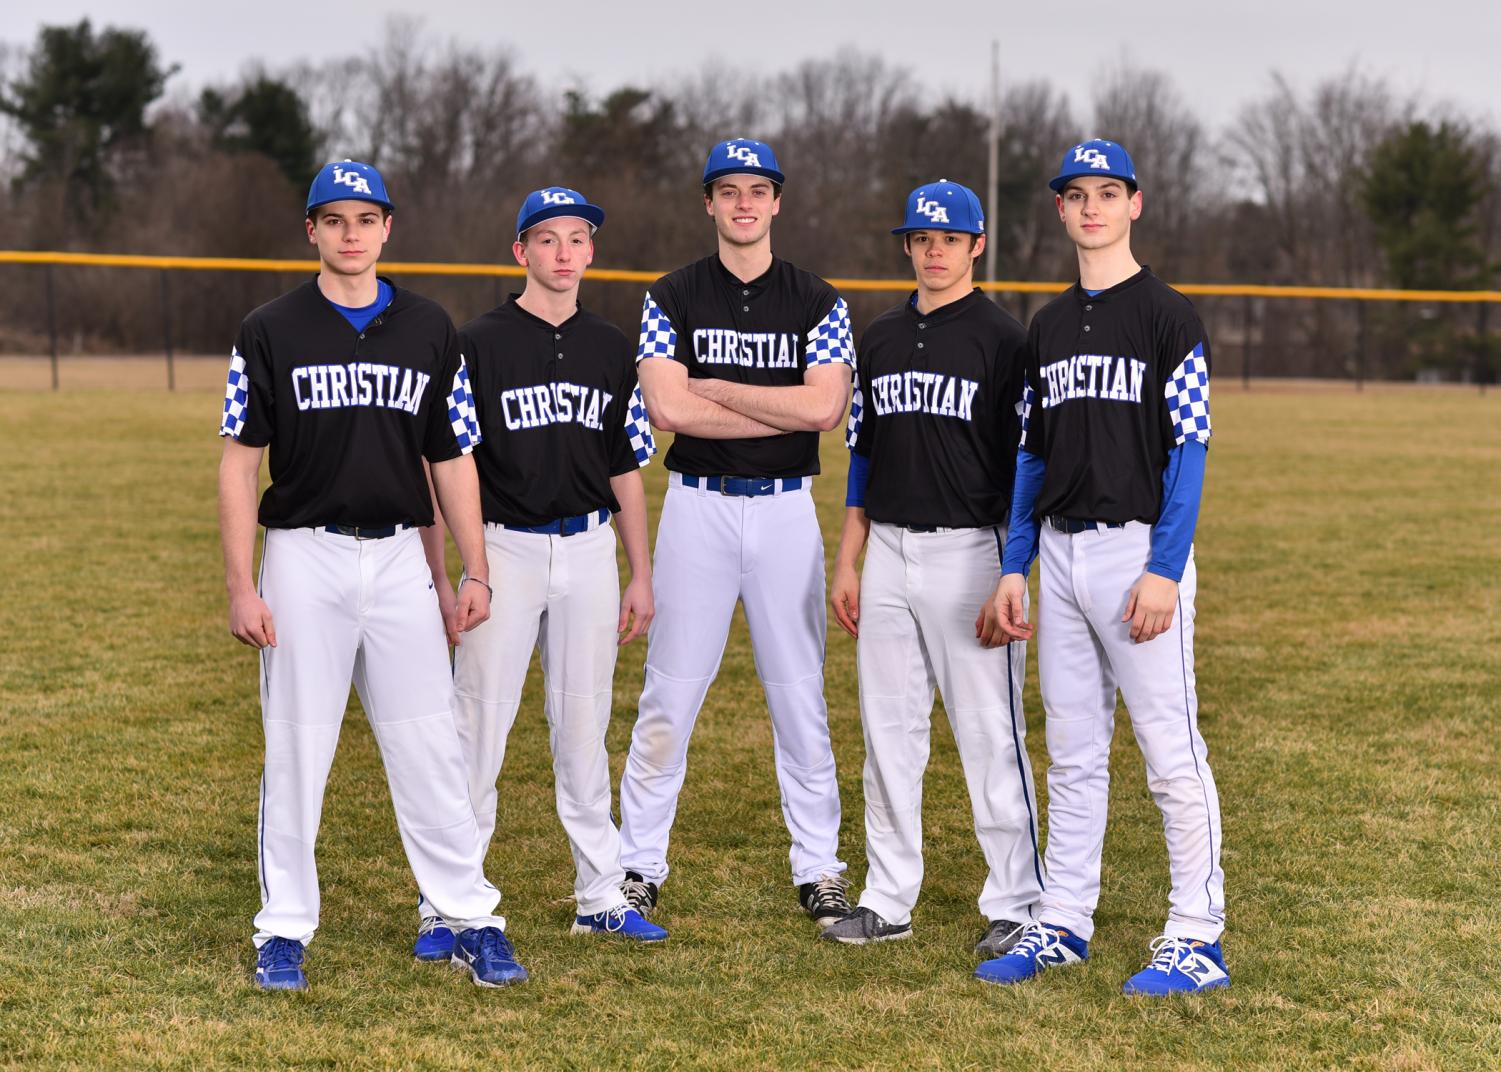 Senior baseball players. Jackson Banks, Jake Standiford, Andrew Branstetter, Griffin Sahli, and Matthew Johnson